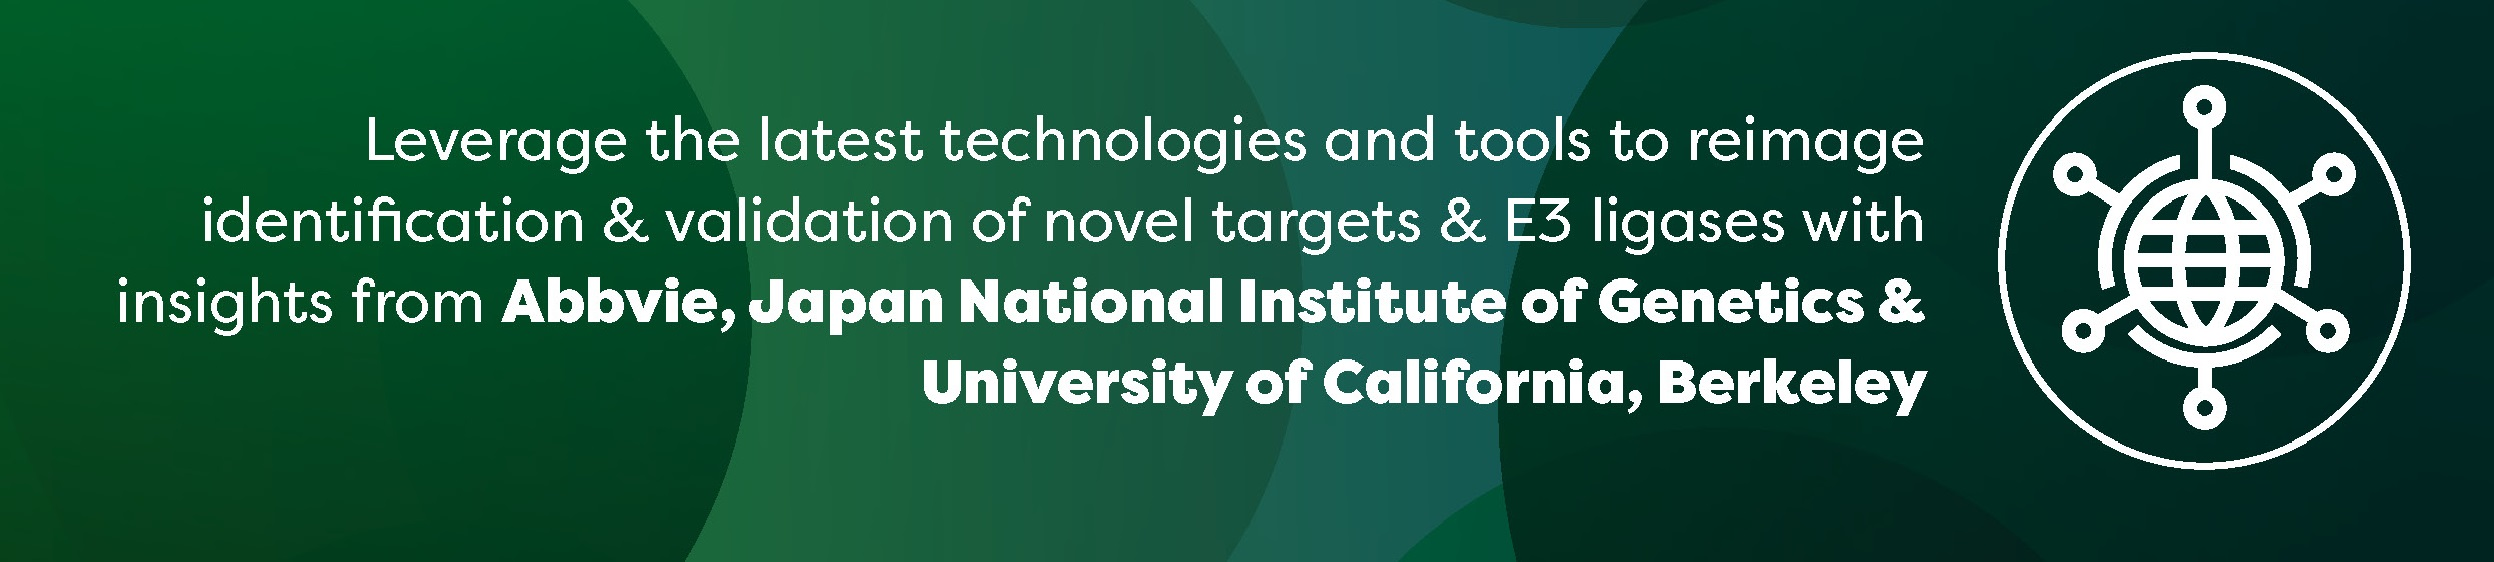 Leverage the latest technologies and tools to reimage identification & validation of novel targets & E3 ligases with insights from Abbvie, Japan National Institute of Genetics & University of California, Berkeley